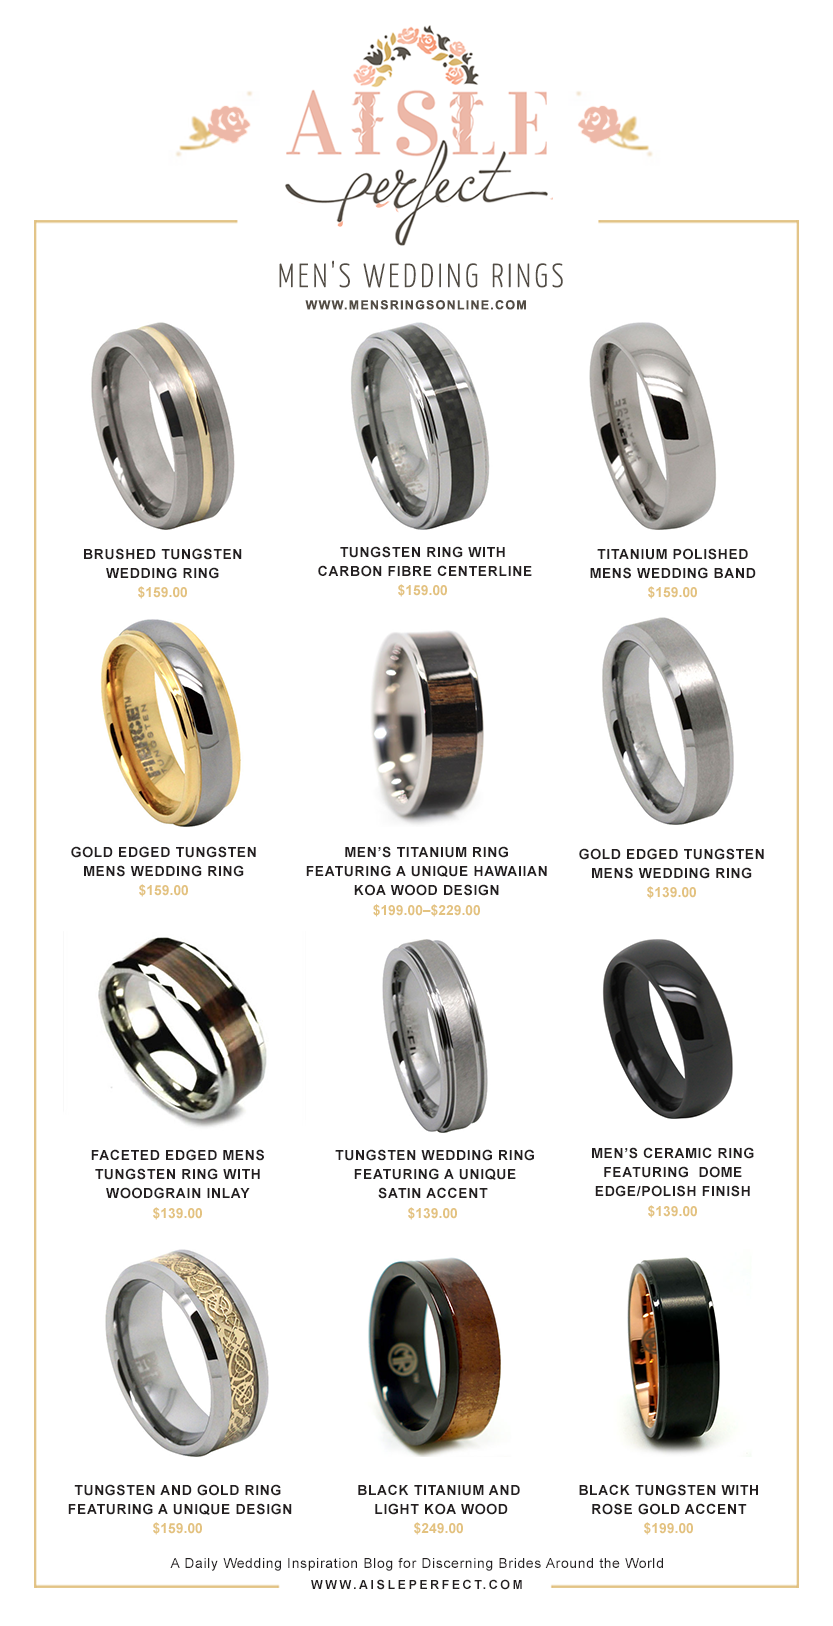 7 Tips For Buying The Grooms Wedding Ring